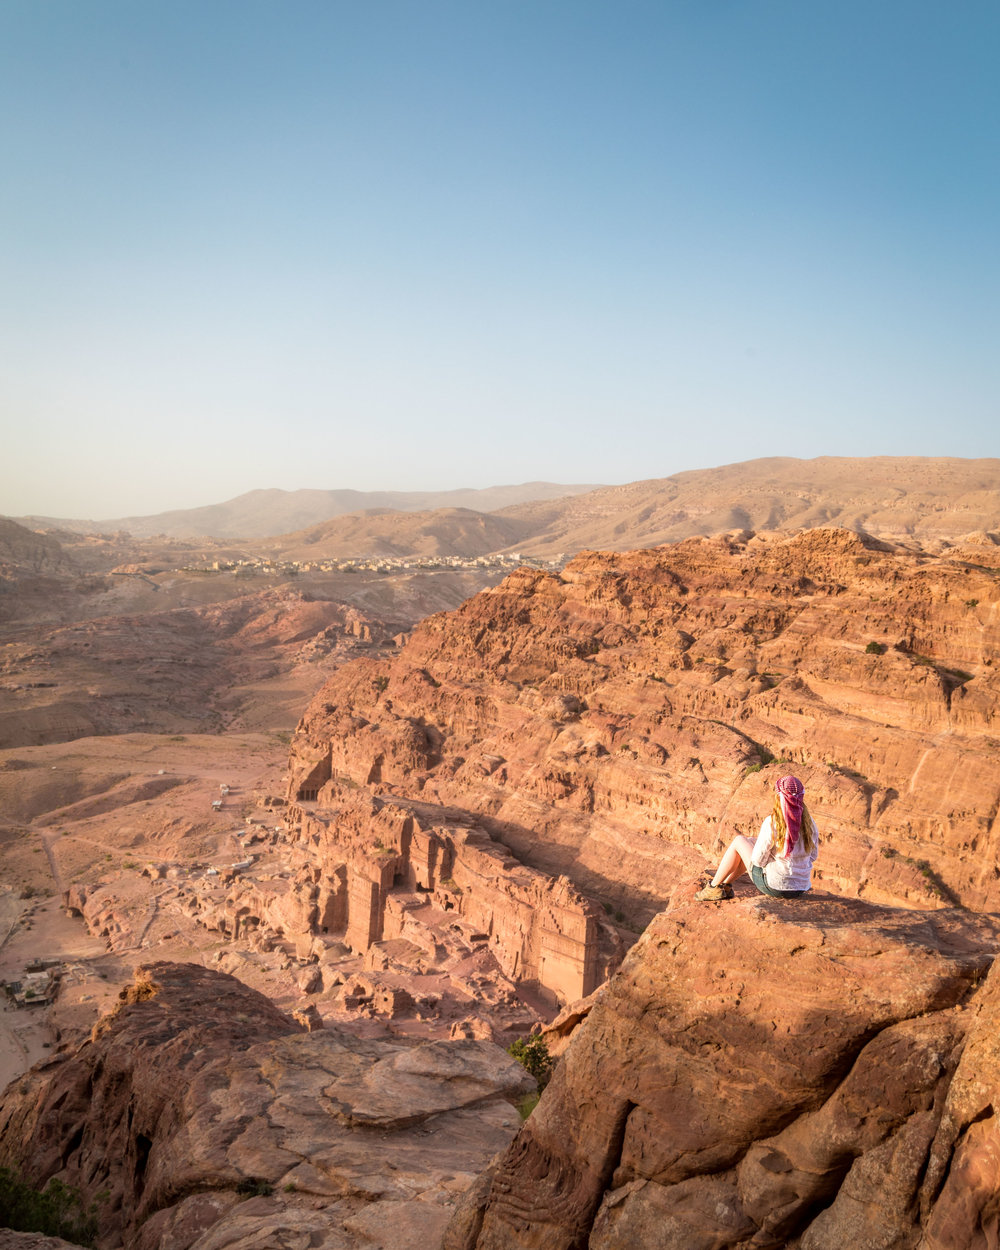 Instagrammable spots in Jordan - The High Place of Sacrifice